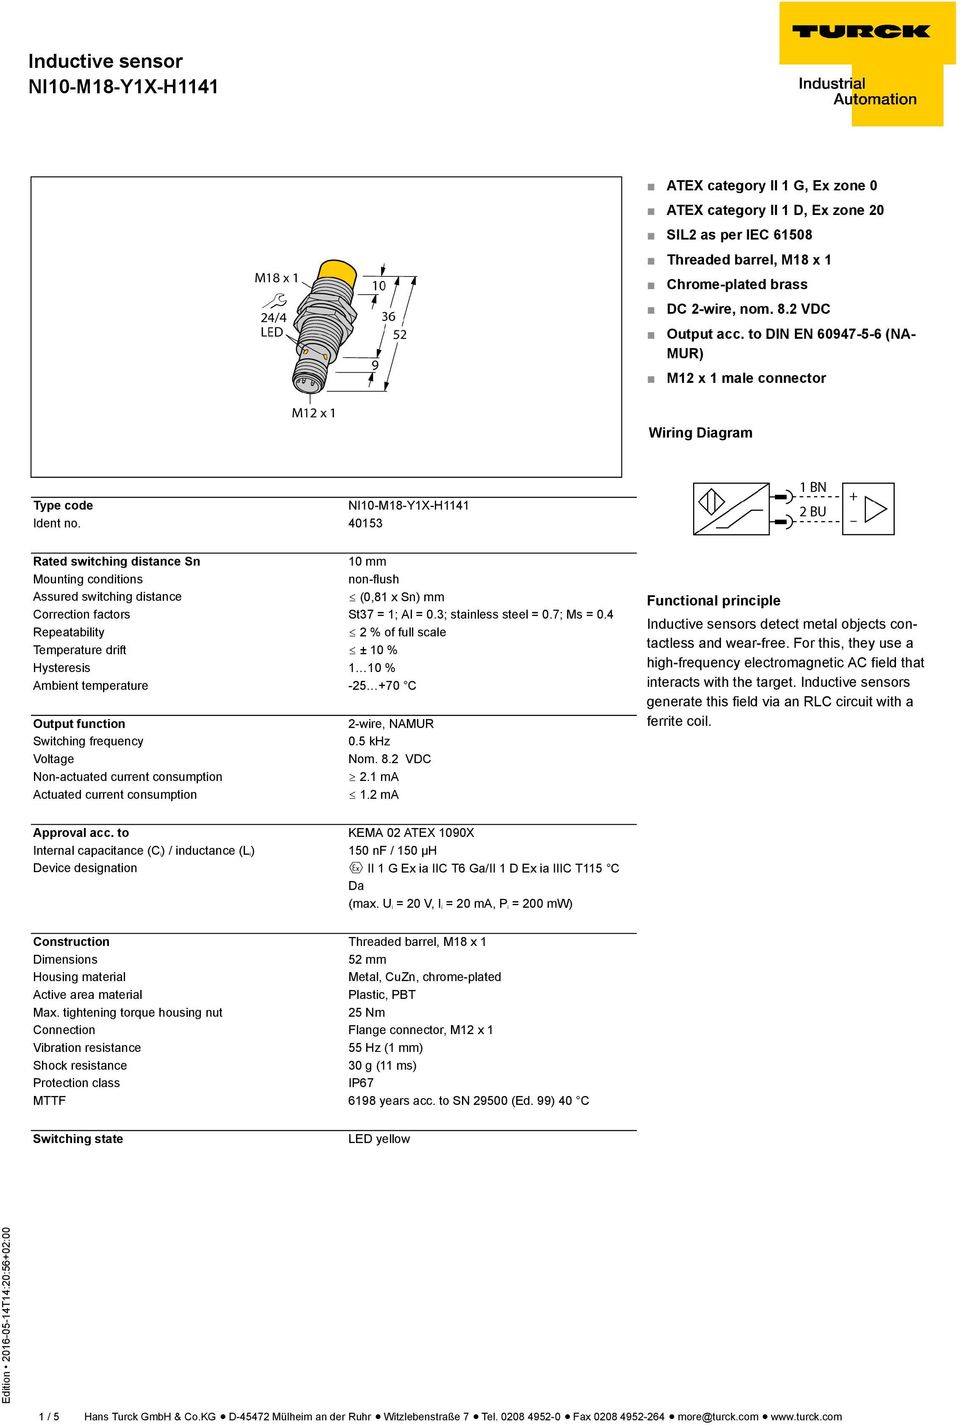 Inductive Sensor Ni10 M18 Y1x H Pdf Do You Use To Connect And Capacitive Proximity Sensors 40153 Rated Switching Distance Sn 10 Mm Mounting Conditions Non Flush Assured